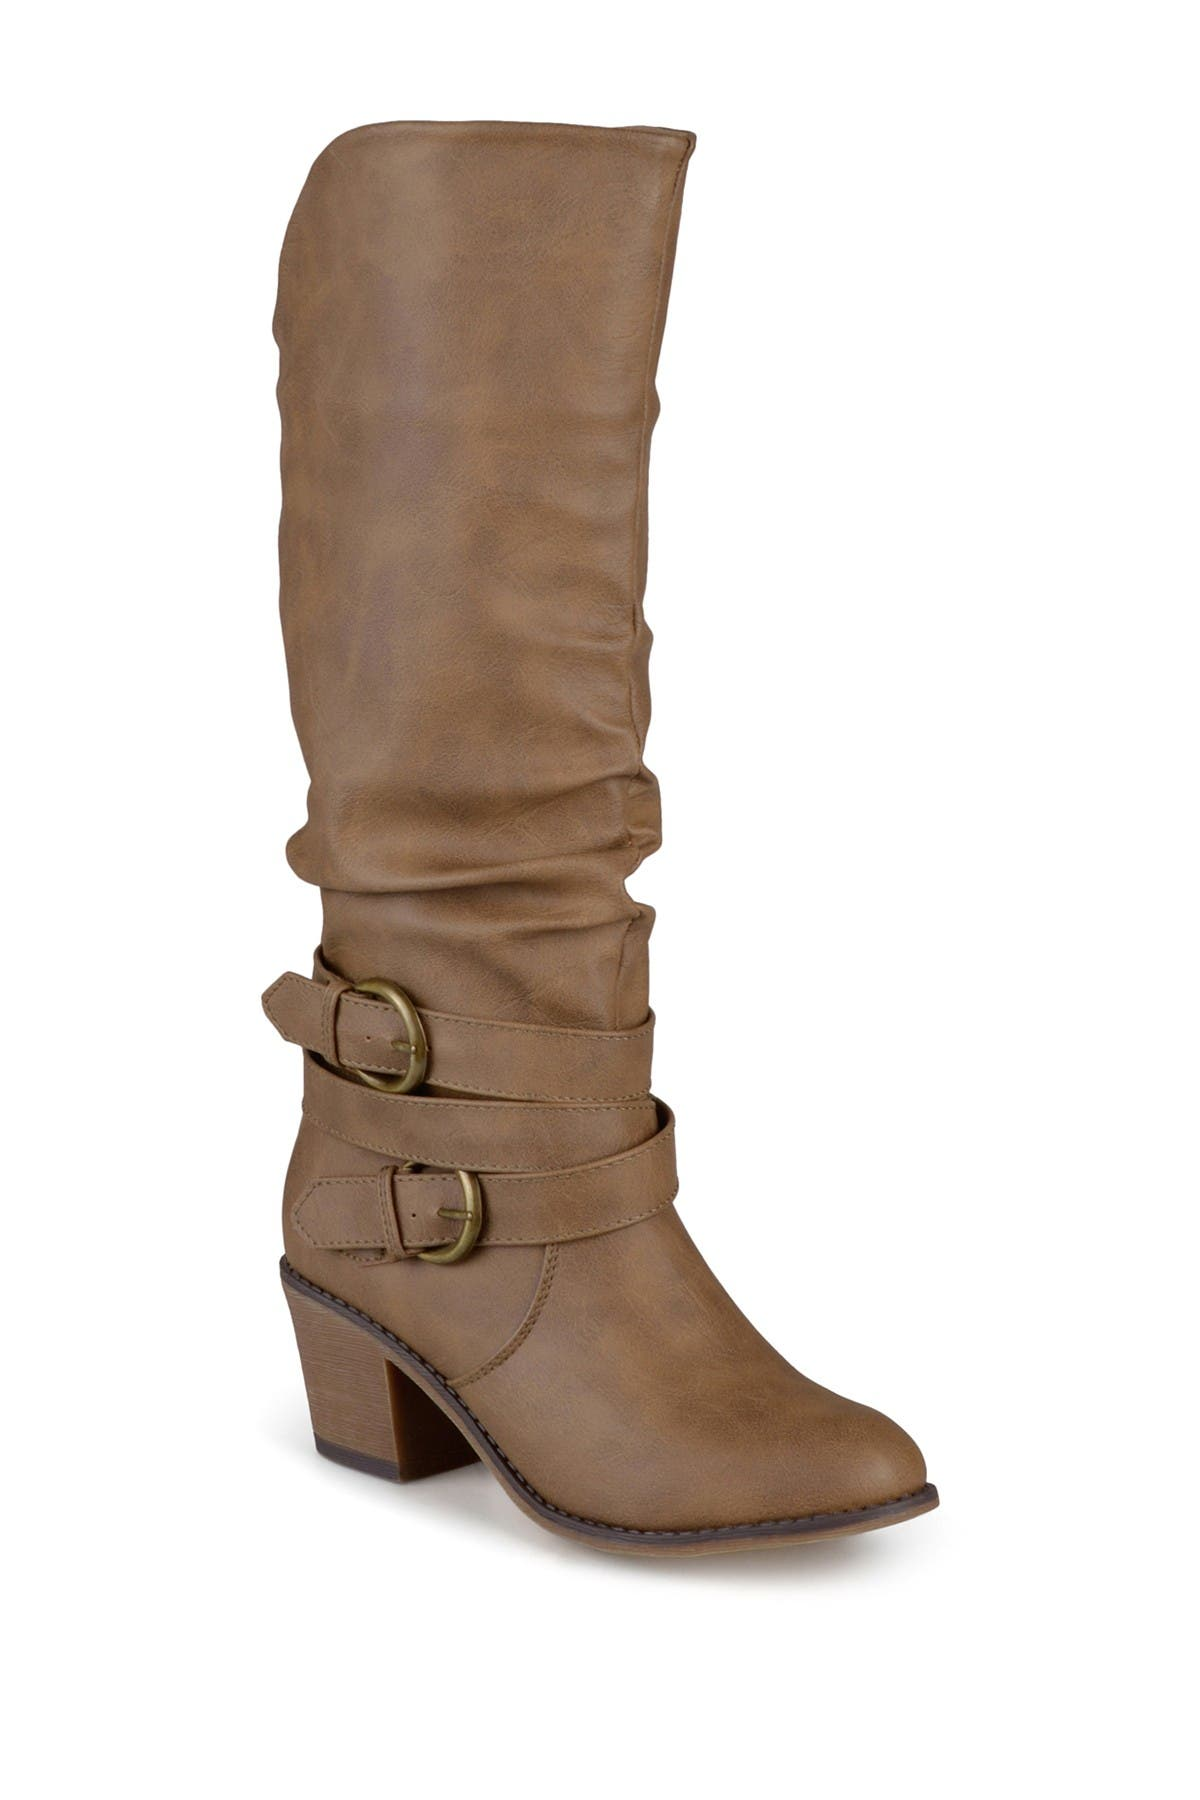 Journee Collection LATE BUCKLE TALL BOOT